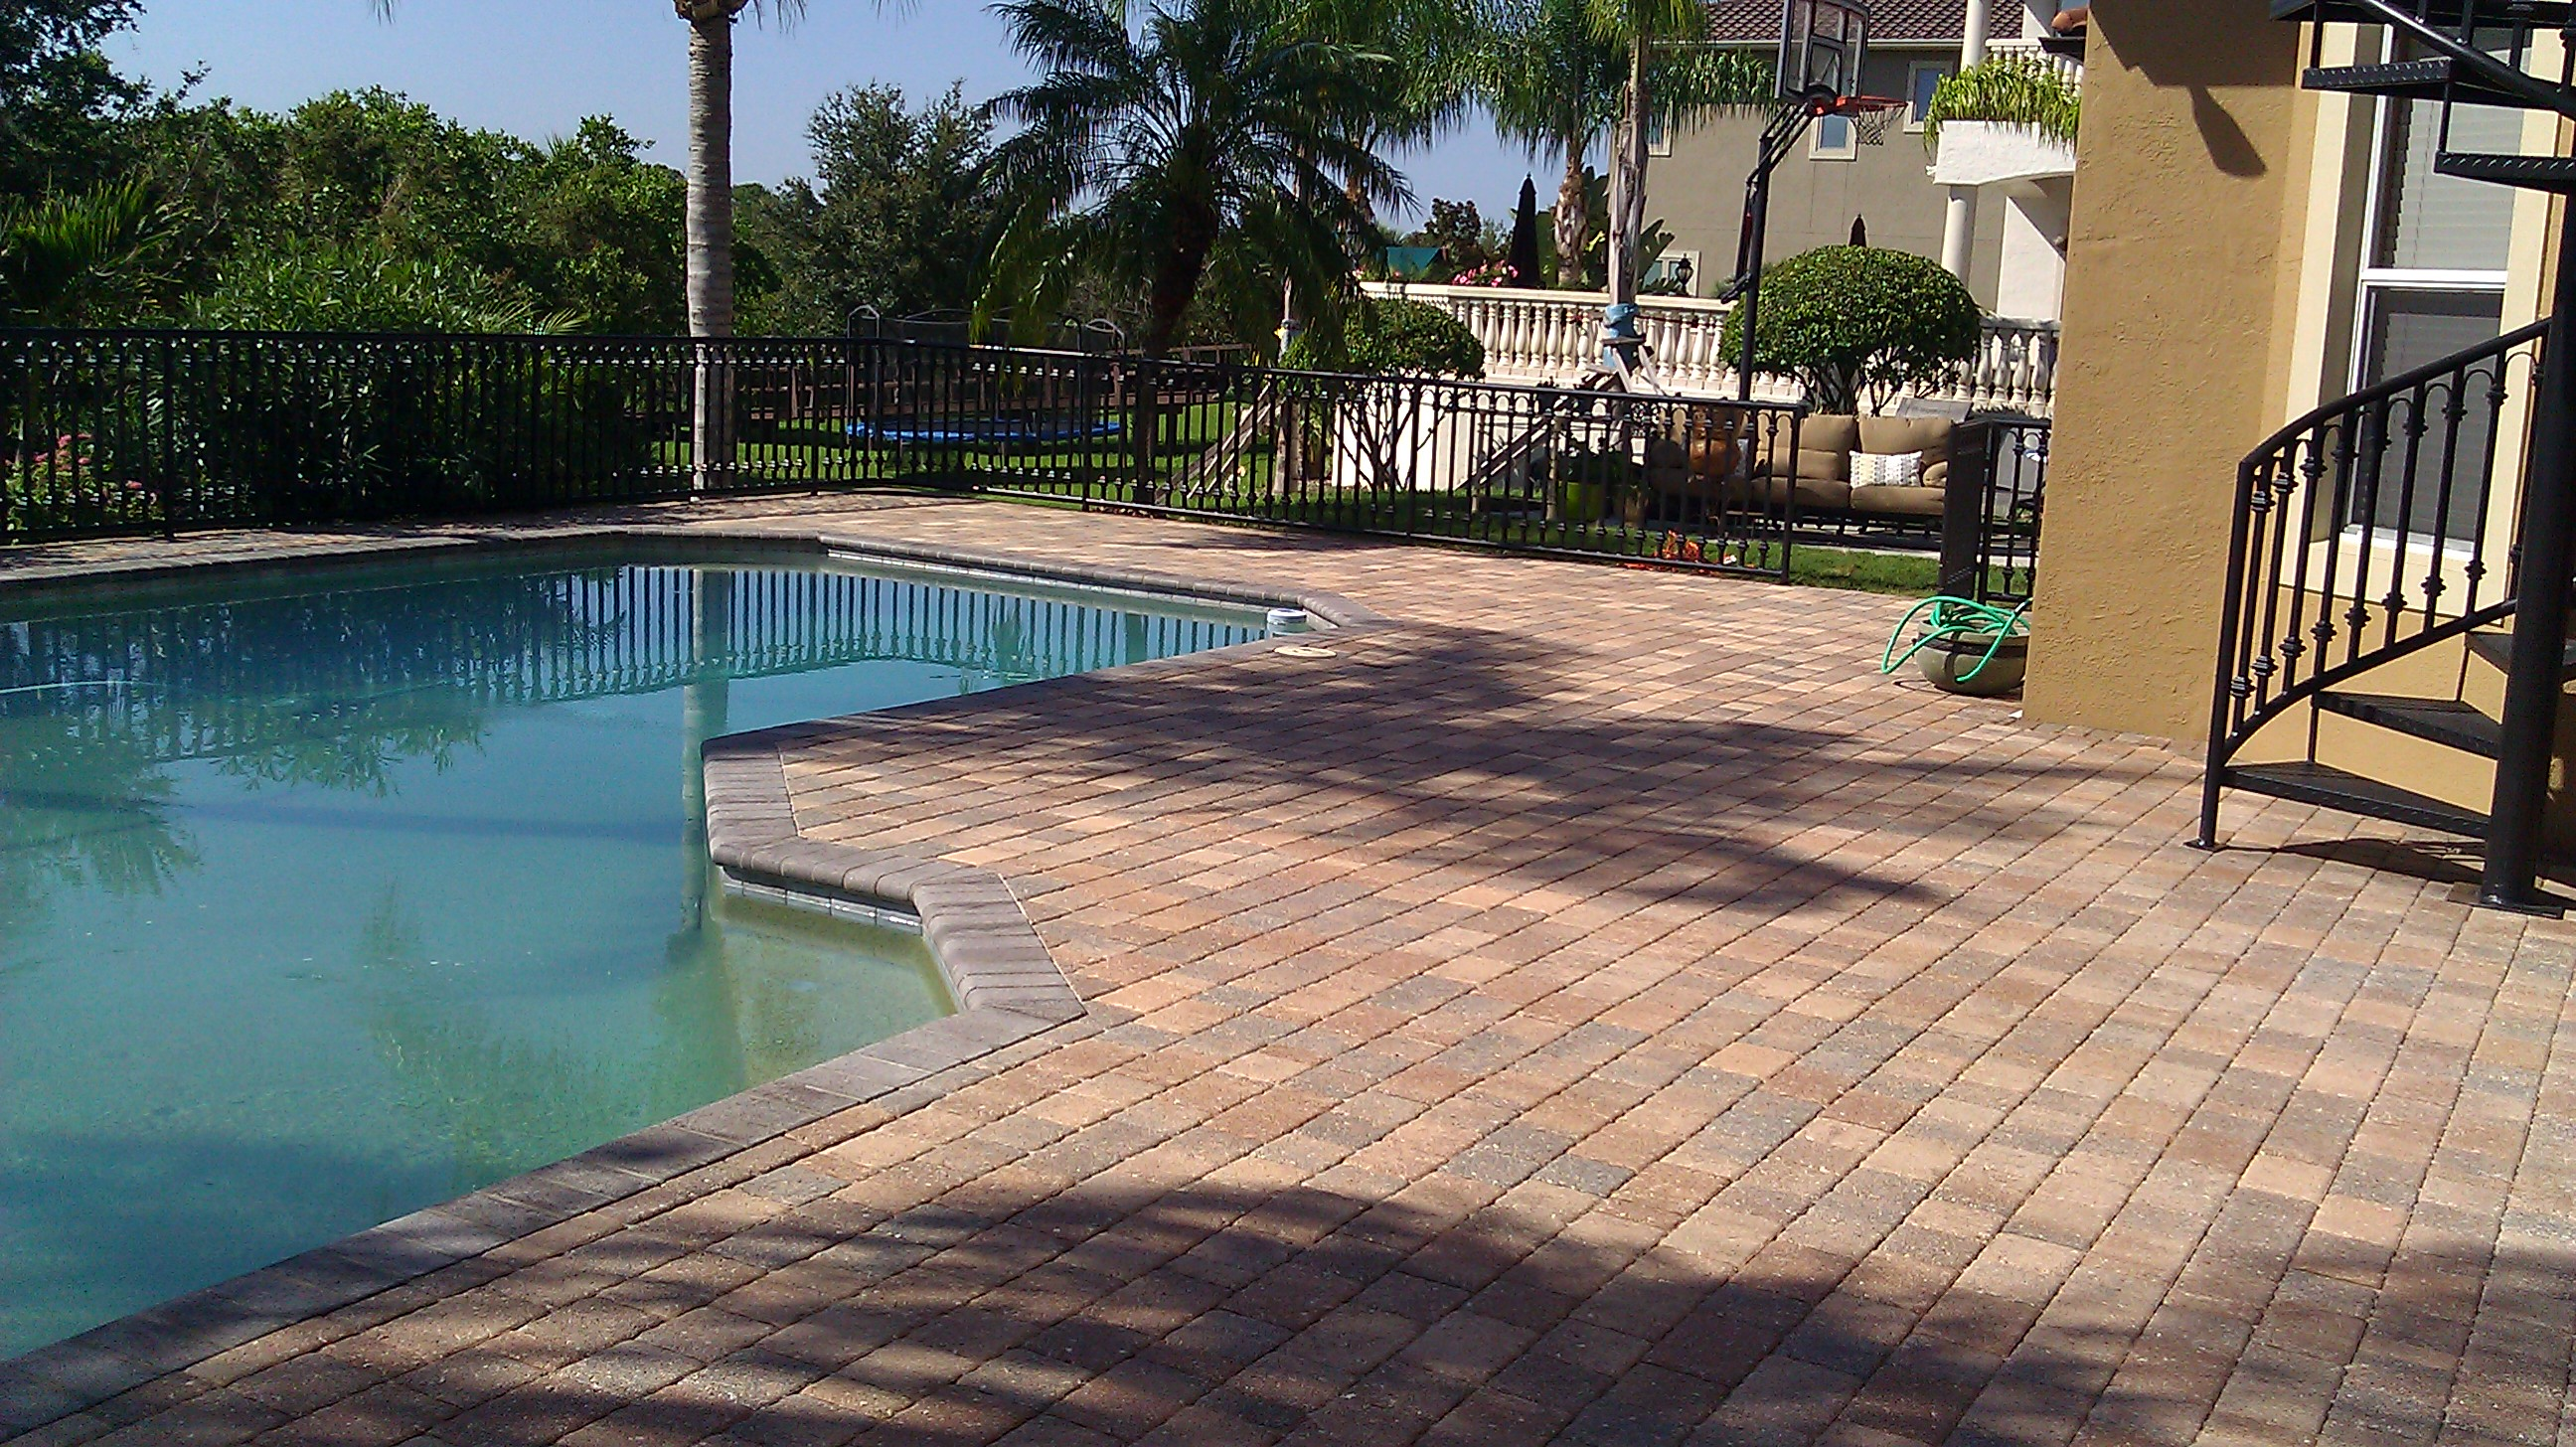 Travertine Pool Deck Paver Pool Deck Sealing  Brick Pavertravertine Sealing And